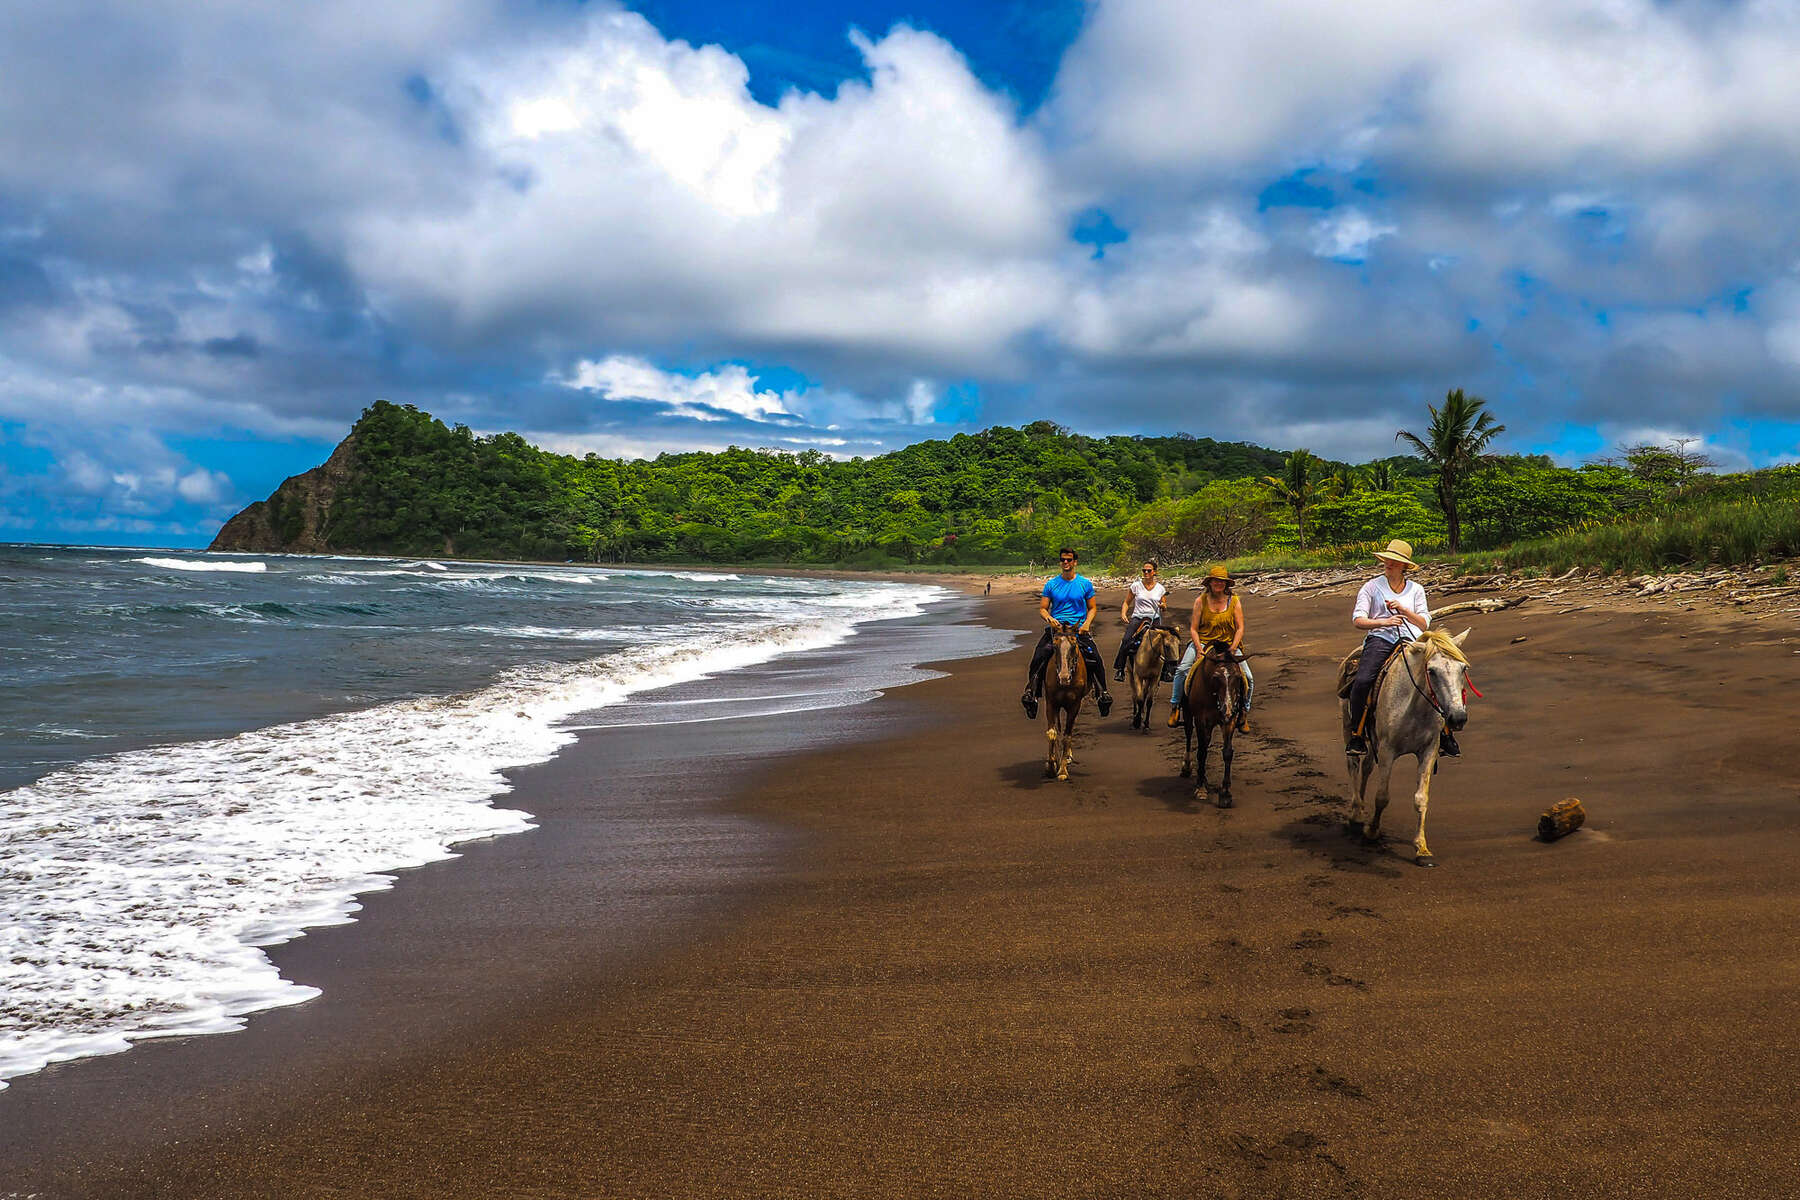 Riders enjoying a beach trail ride in Costa Rica